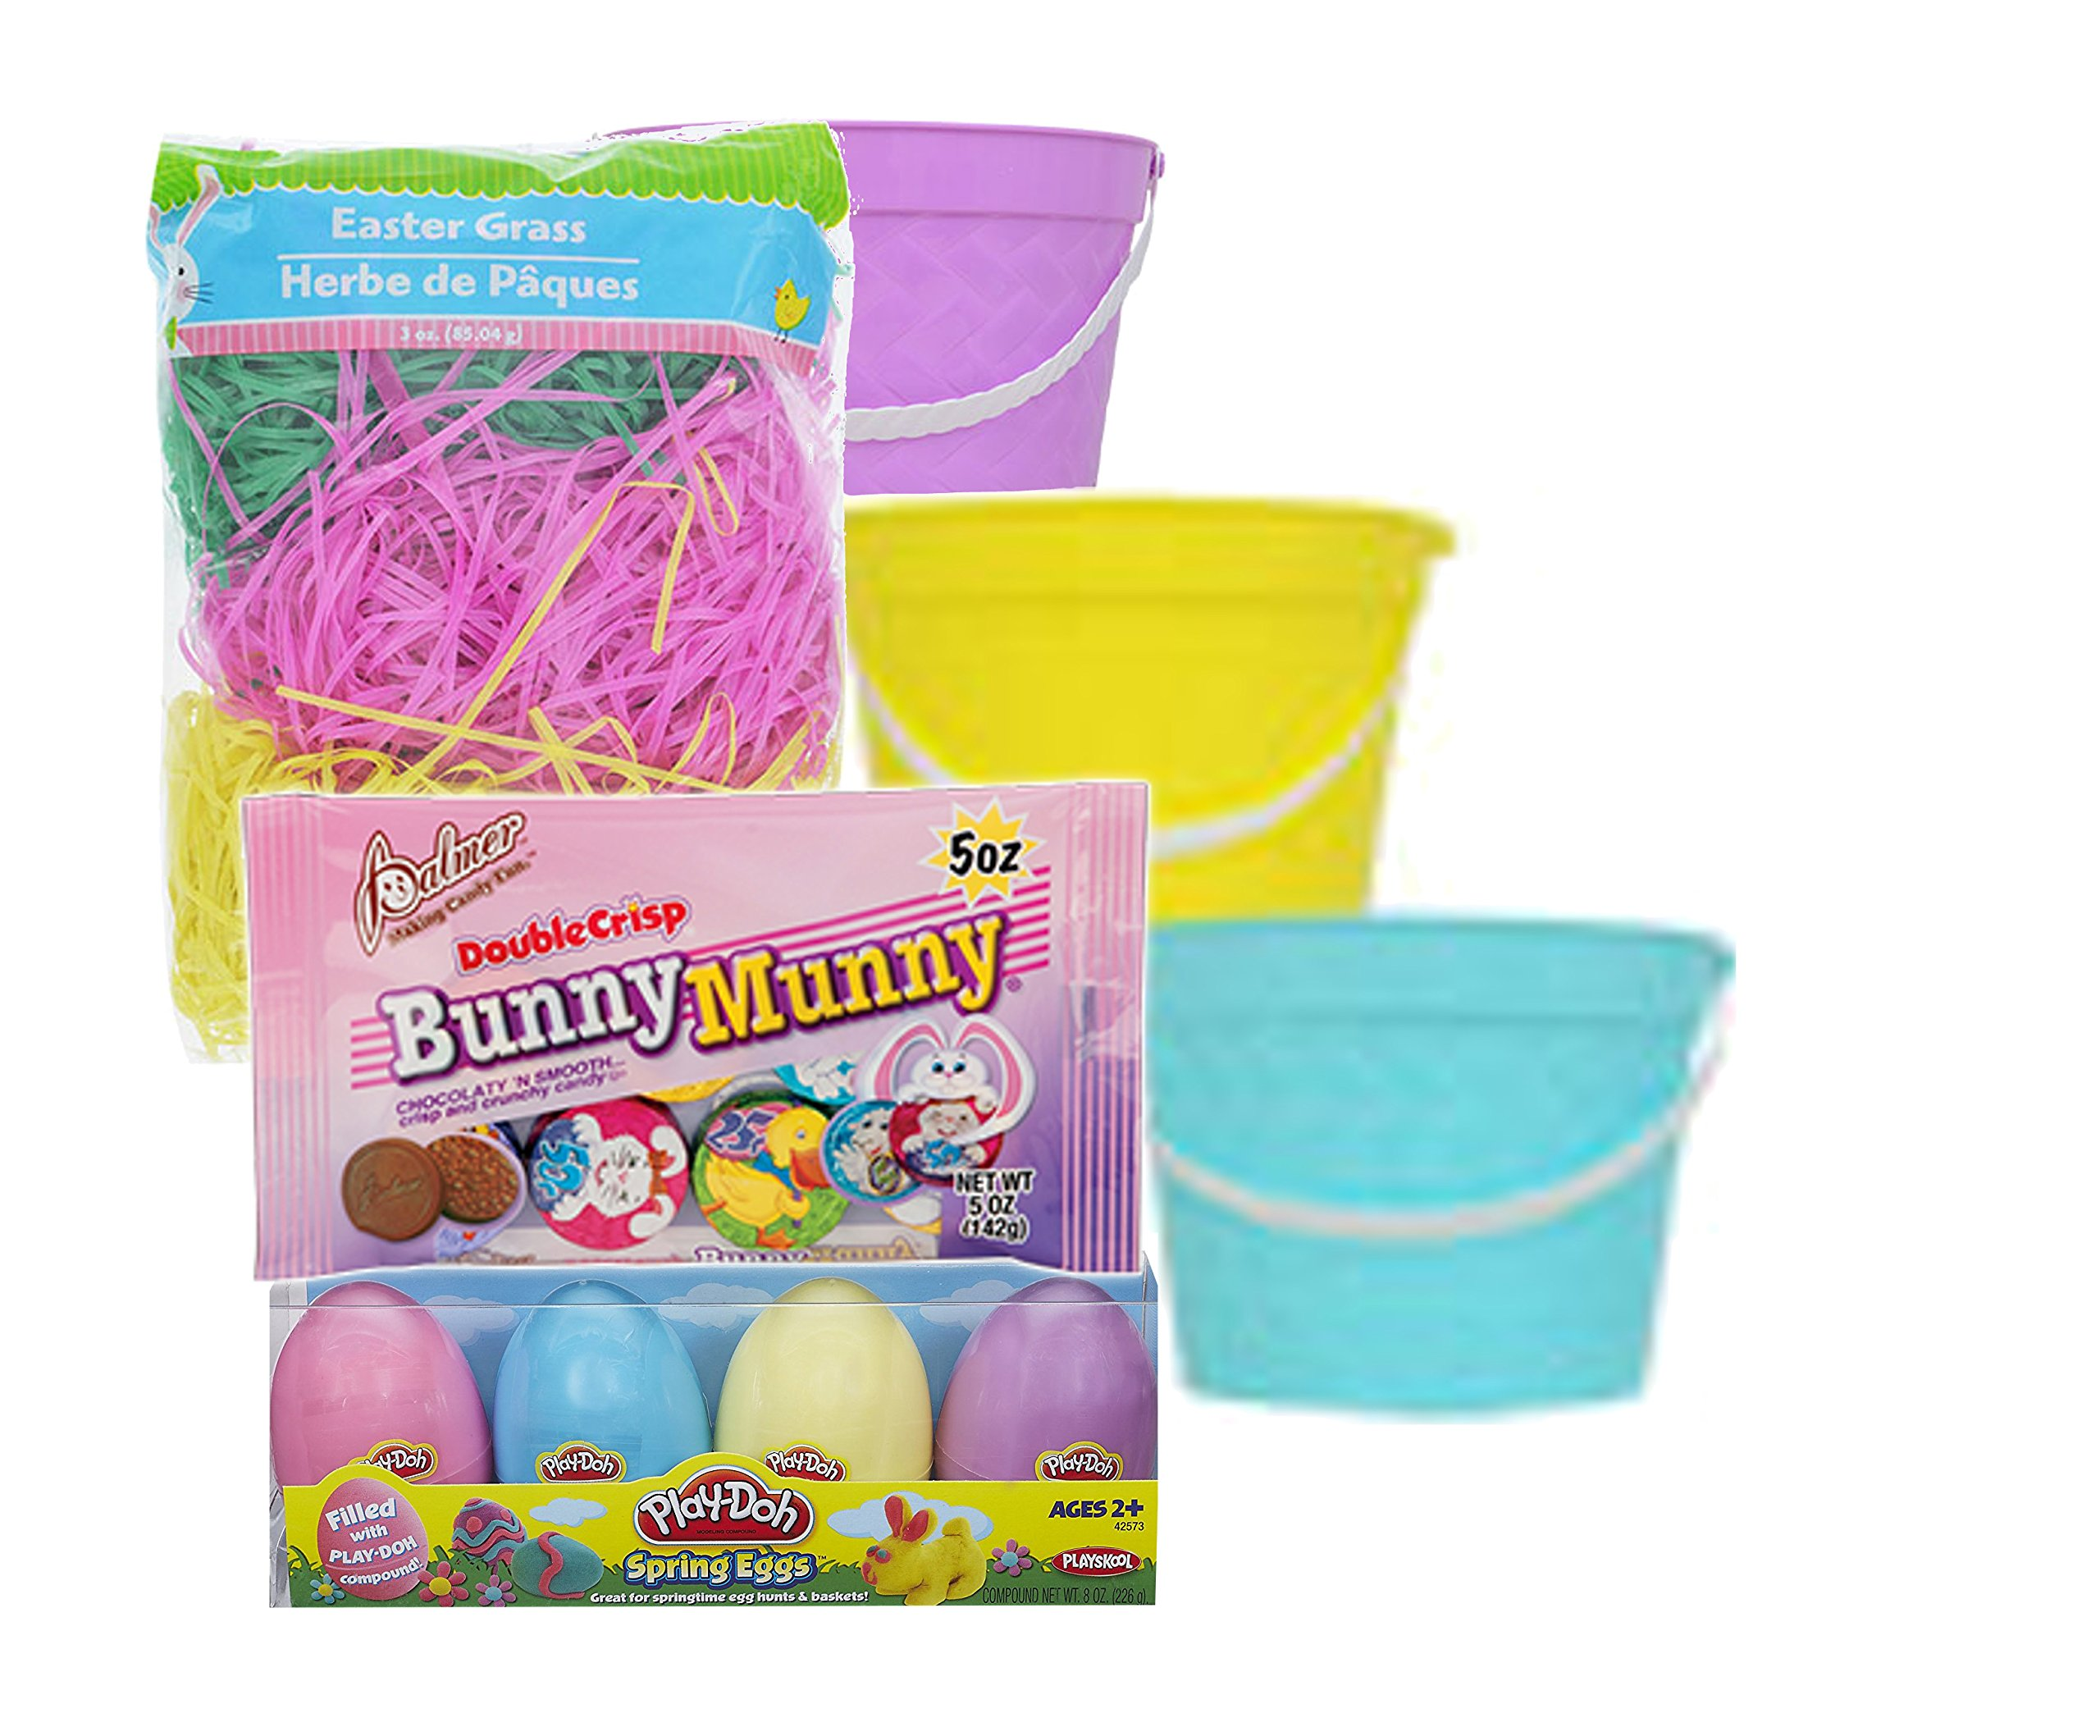 Easter Baskets for kids toddlers with Play Doh Spring Eggs 4 pack, Colorful Easter Grass Basket fluff & Chocolate Candy. Great for Easter Egg Hunts & Easter Egg Festival!